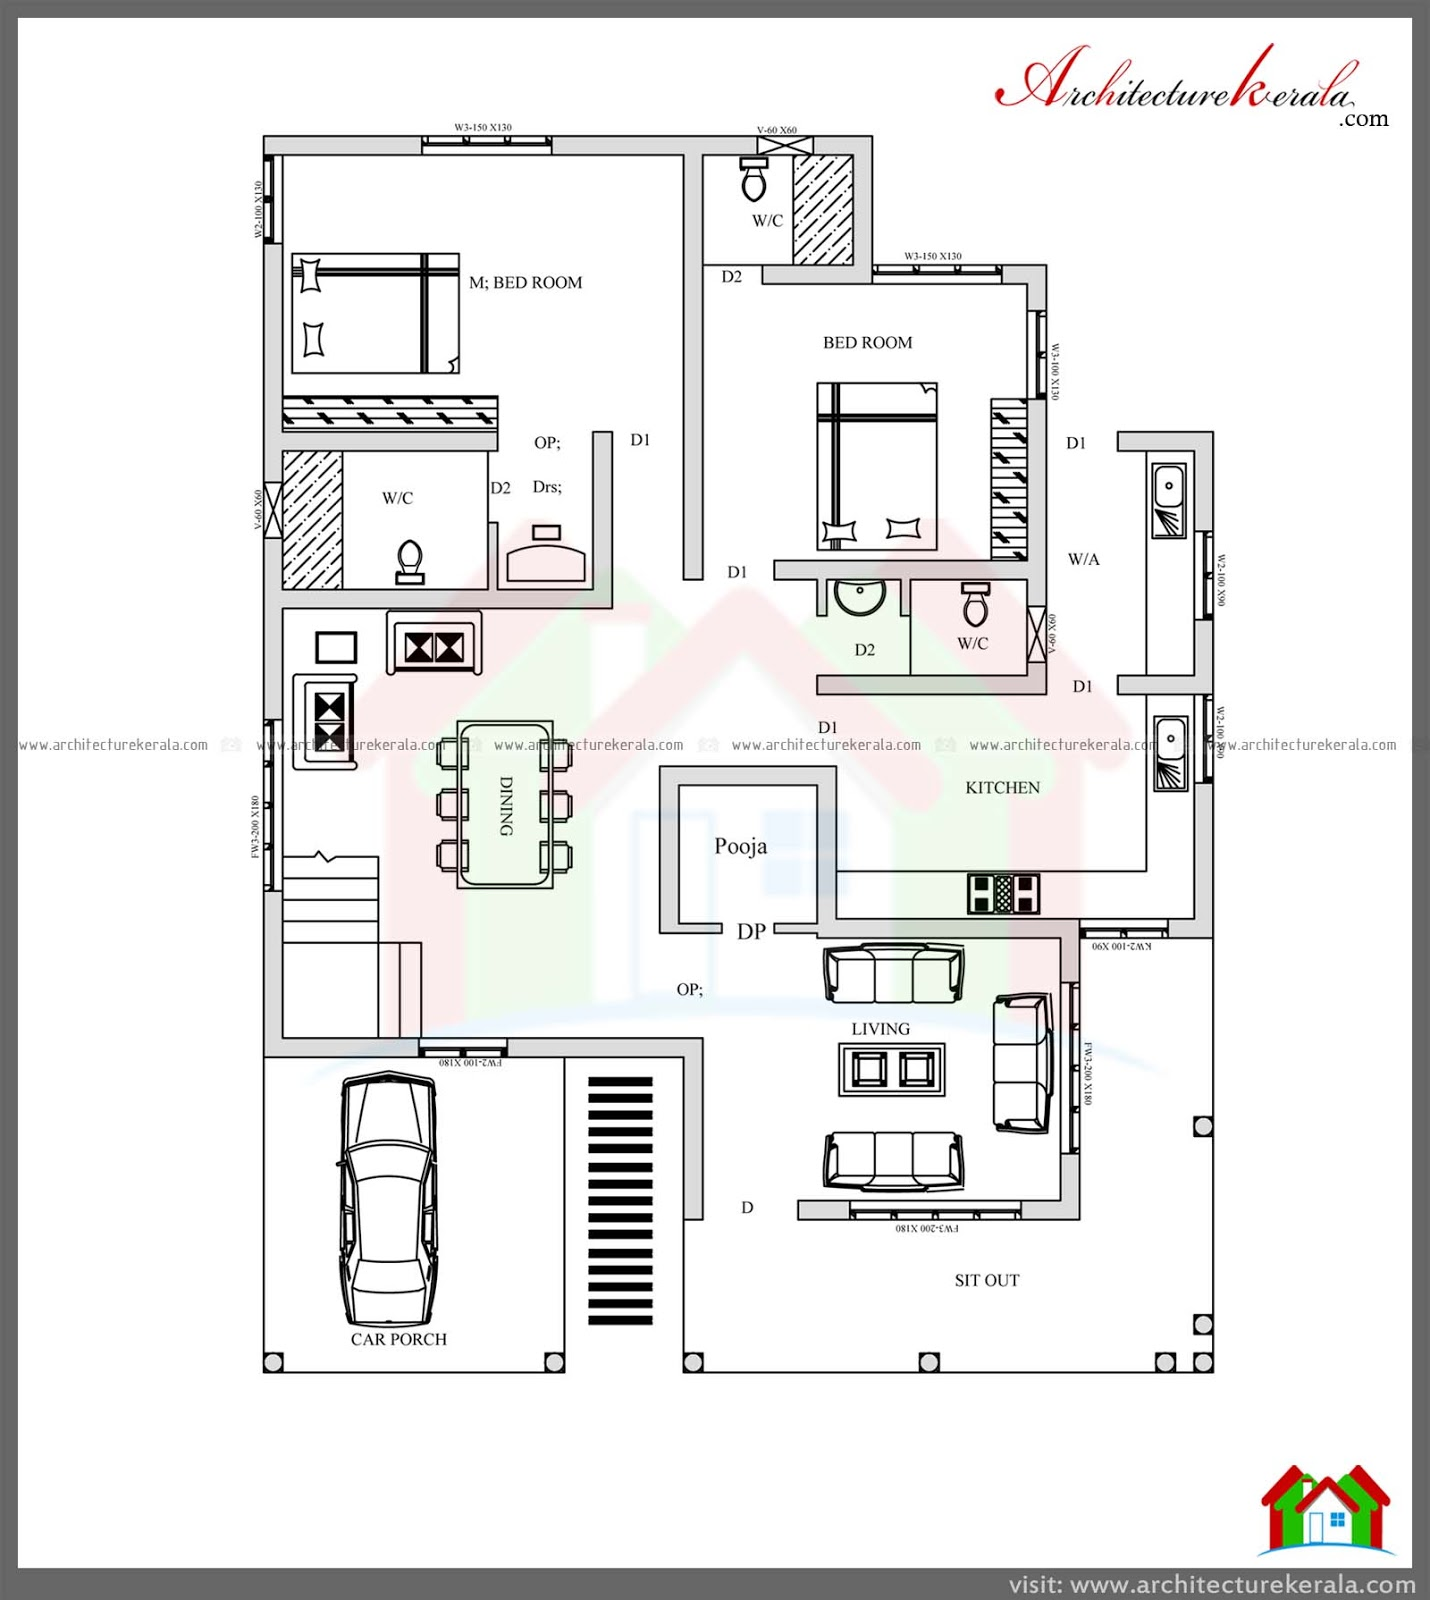 Stunning 4 bedroom kerala home design with pooja room free for House plans in kerala